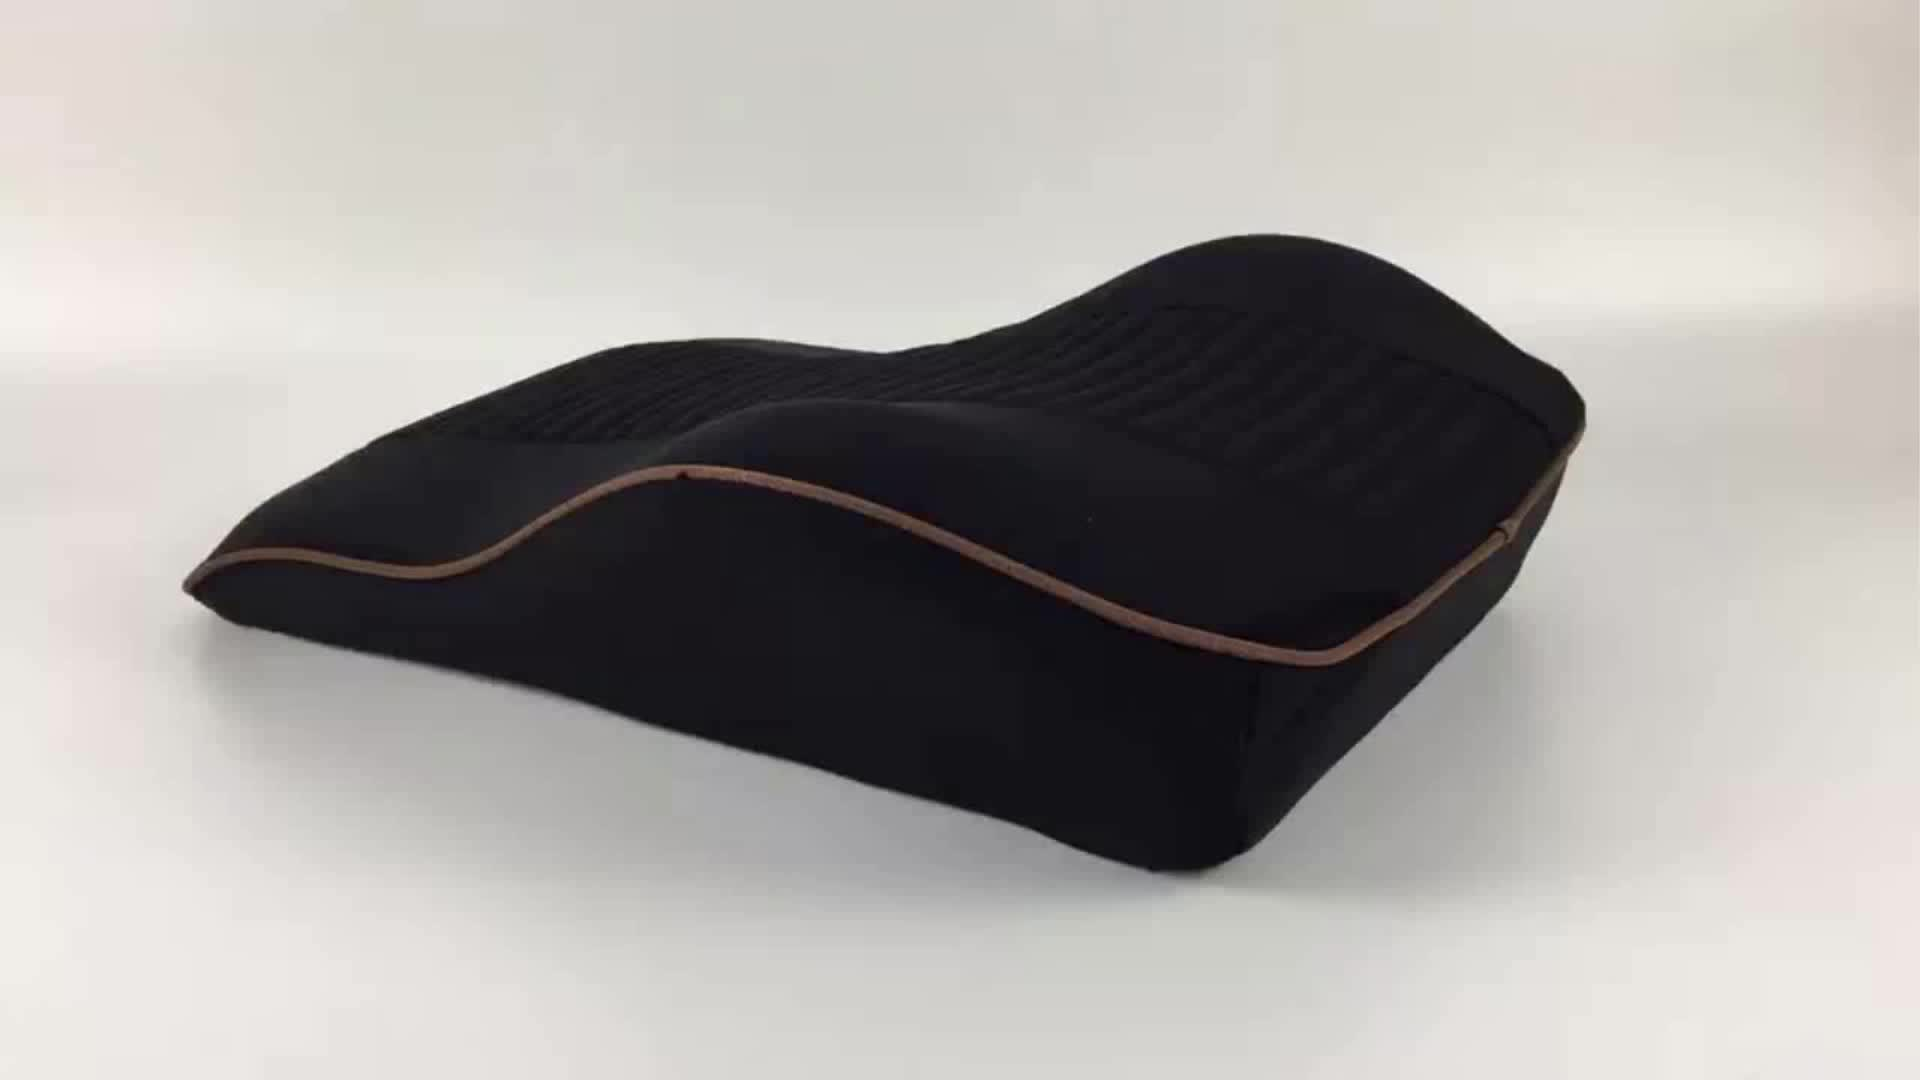 Car Back Support Cushion Orthopedic Design For Back Pain Relief And Support For Office Chair, Car Seat.